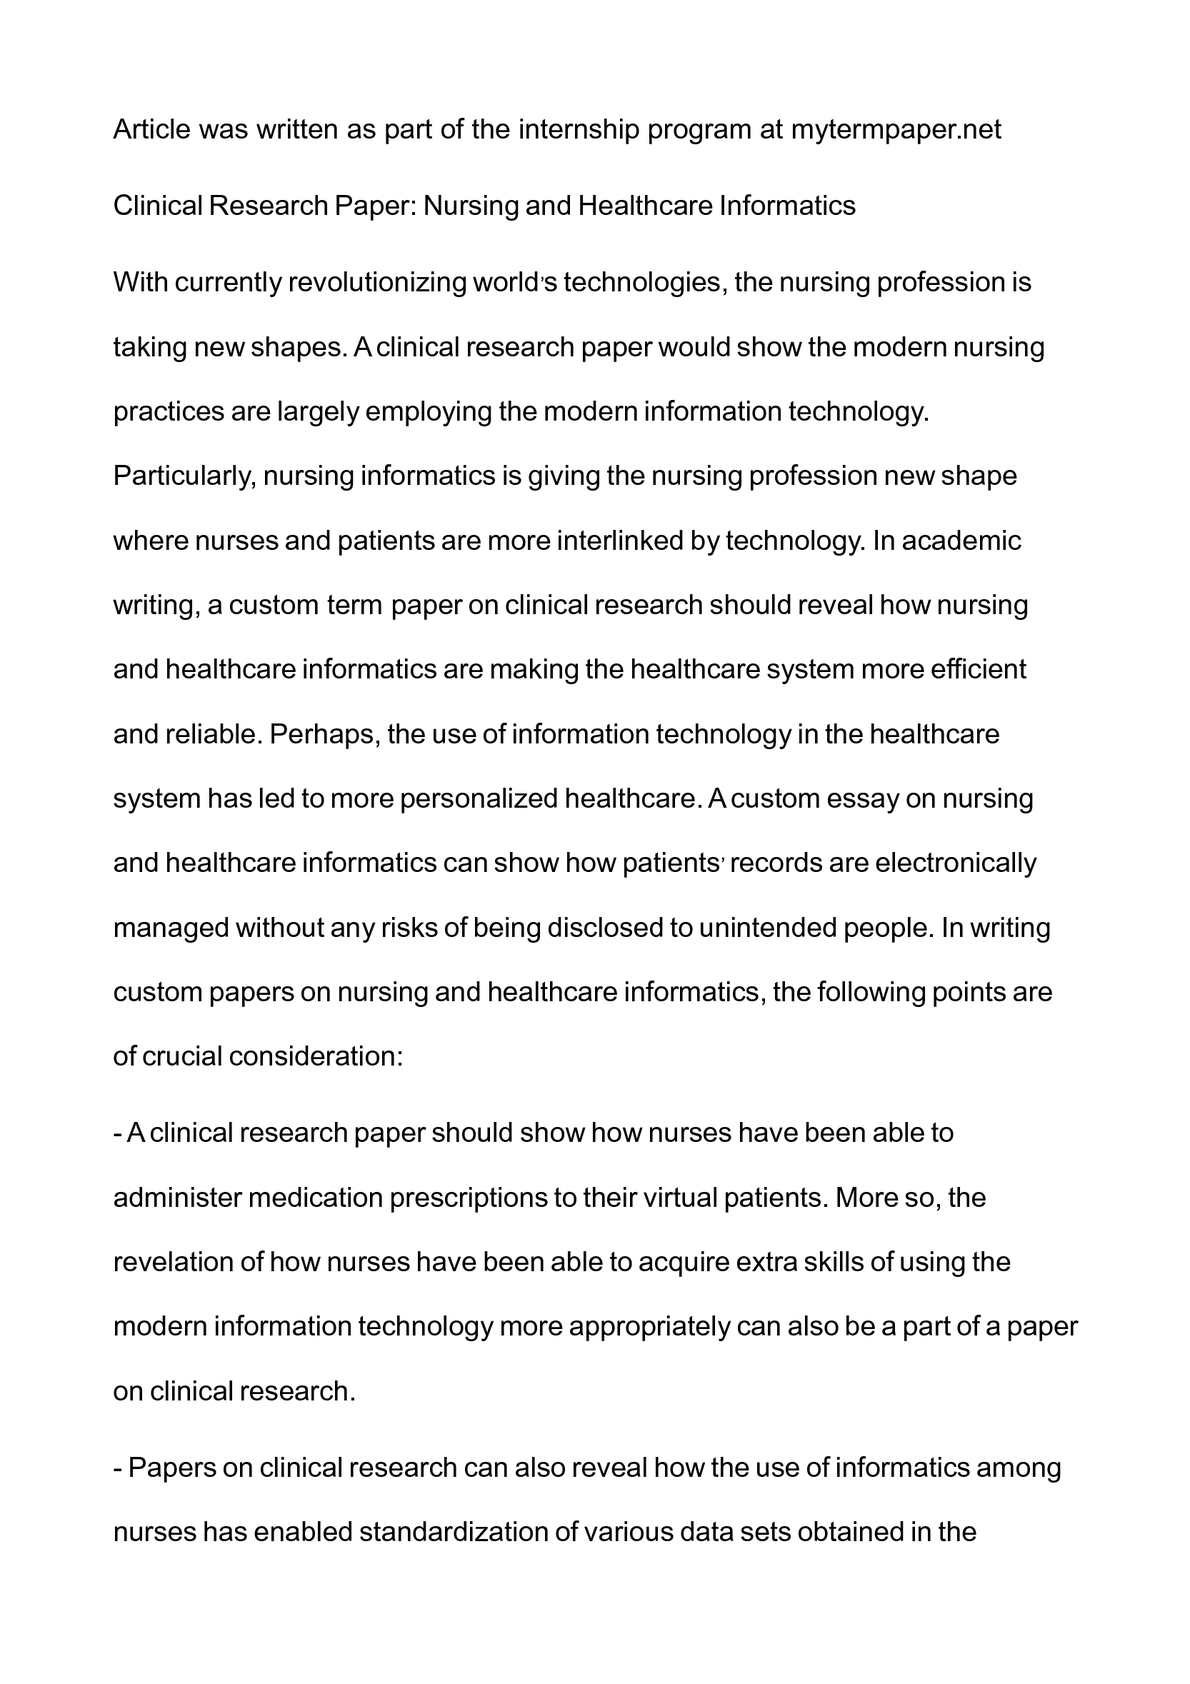 004 P1 Research Paper On Wondrous Nursing Topics Peer Reviewed Articles Shortage For Full